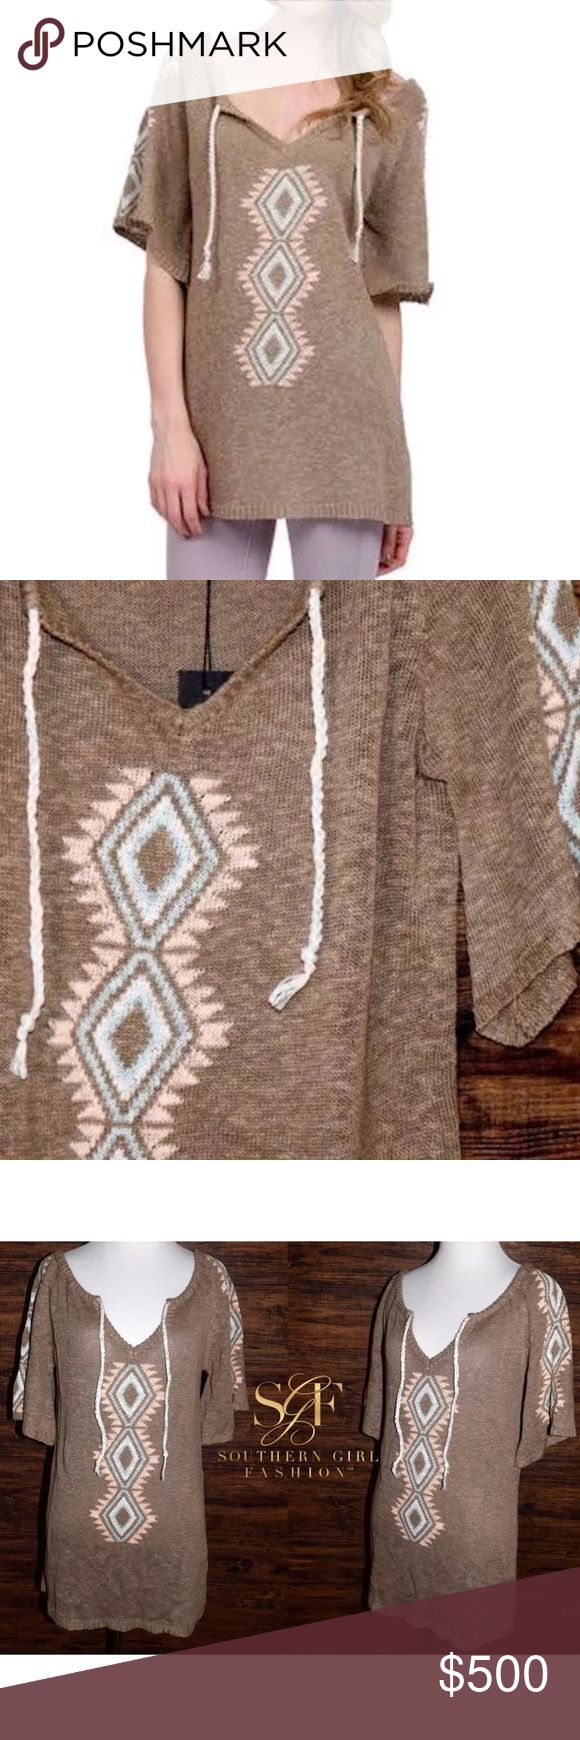 ETHNIC TUNIC Short Sleeve Sweater Boho Mini Dress Available Sizes: P/S and M/L. New With Tags. $248 MSRP + Tax.   • Beautiful beige sweater tunic featuring an effortless silhouette & ethnic-inspired diamond design. • V-neckline includes rainbow tassel ties. • Semi-stretchy, soft & comfortable. • Ribbed trimming along hemlines. • Unlined, eyelet. • Runs true to size. • Short sleeves. • Linen, Cotton.  {Southern Girl Fashion - Boutique Policy}   ✔️ Same-Business-Day Shipping (10am CT). ✔️…